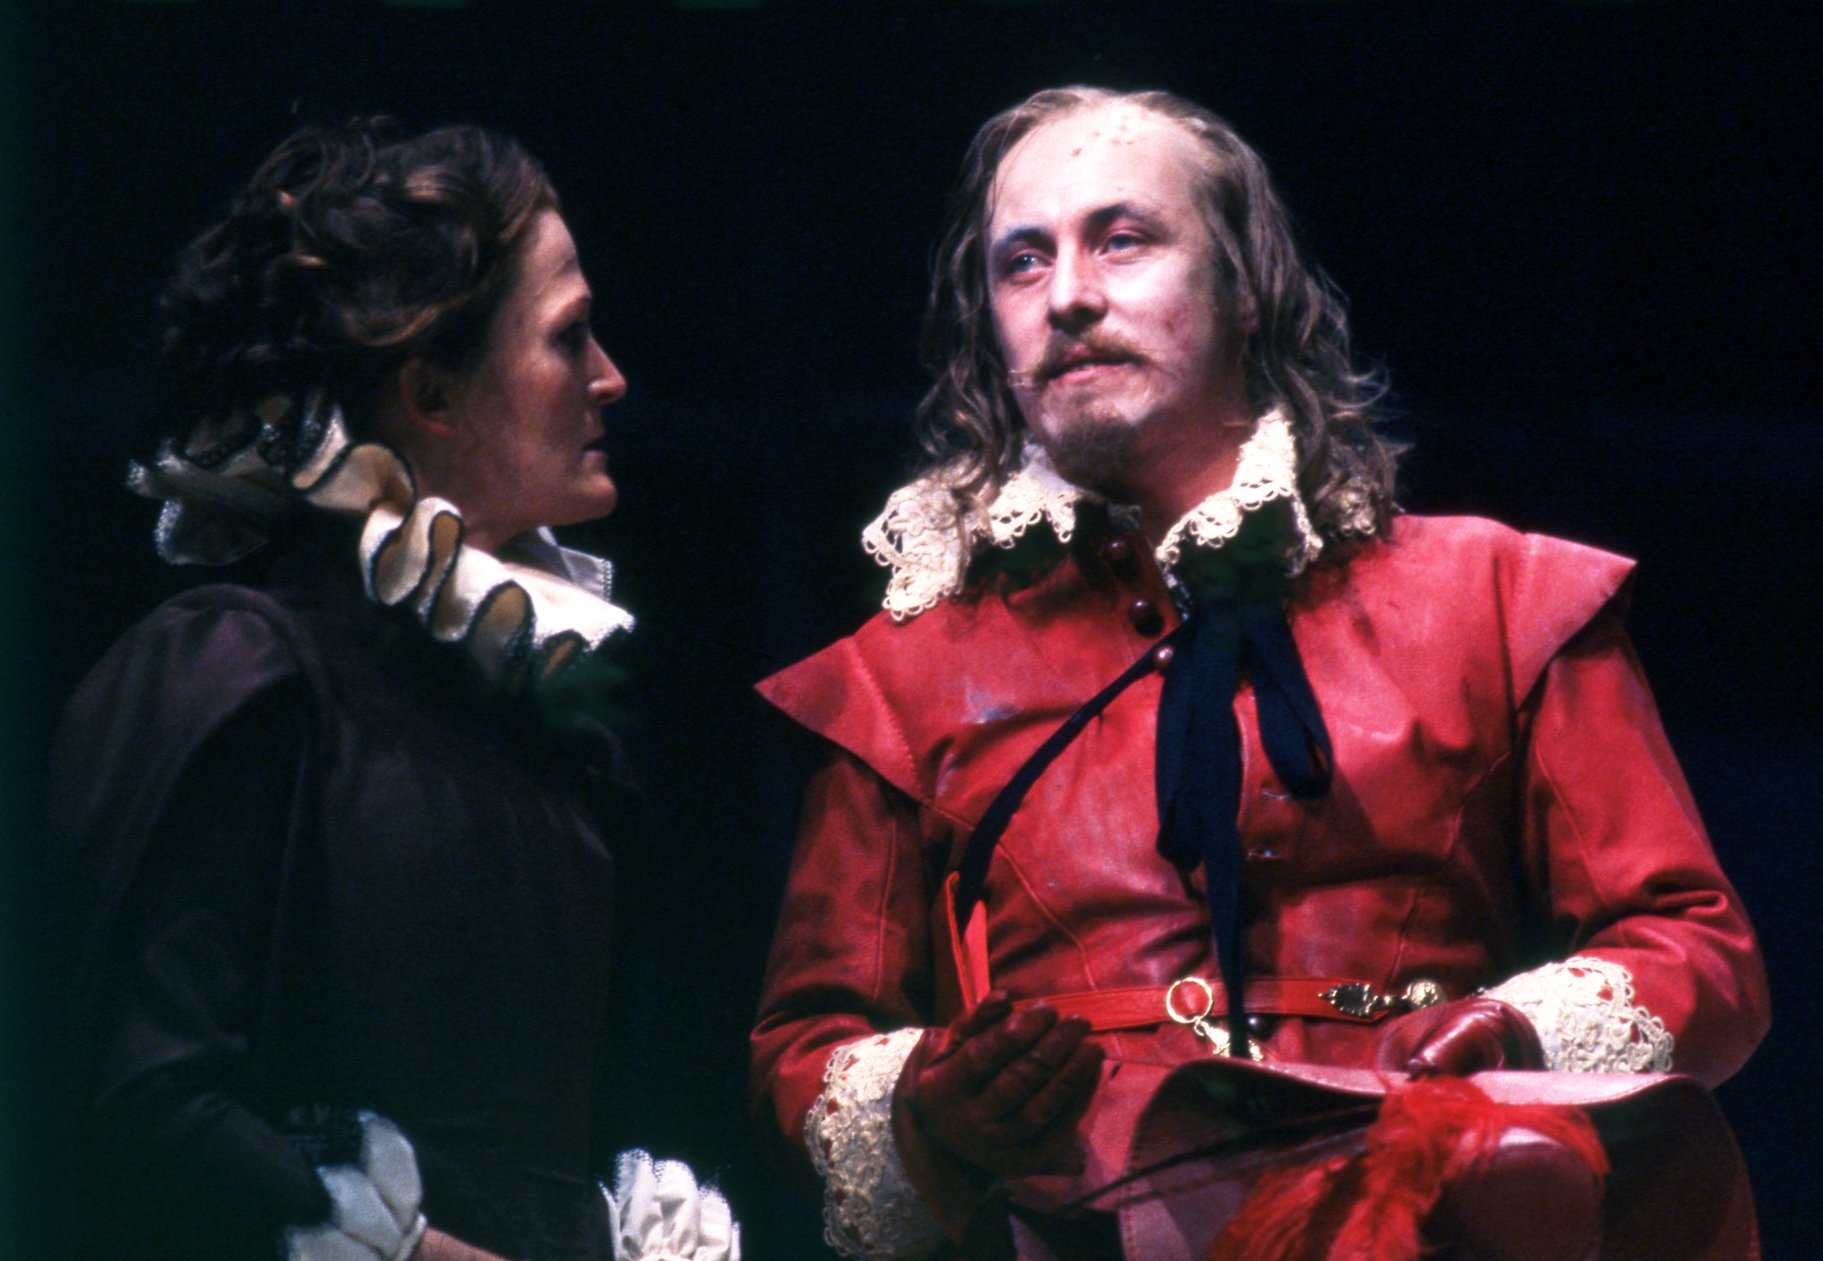 A woman in black talks to a man in a red suit.